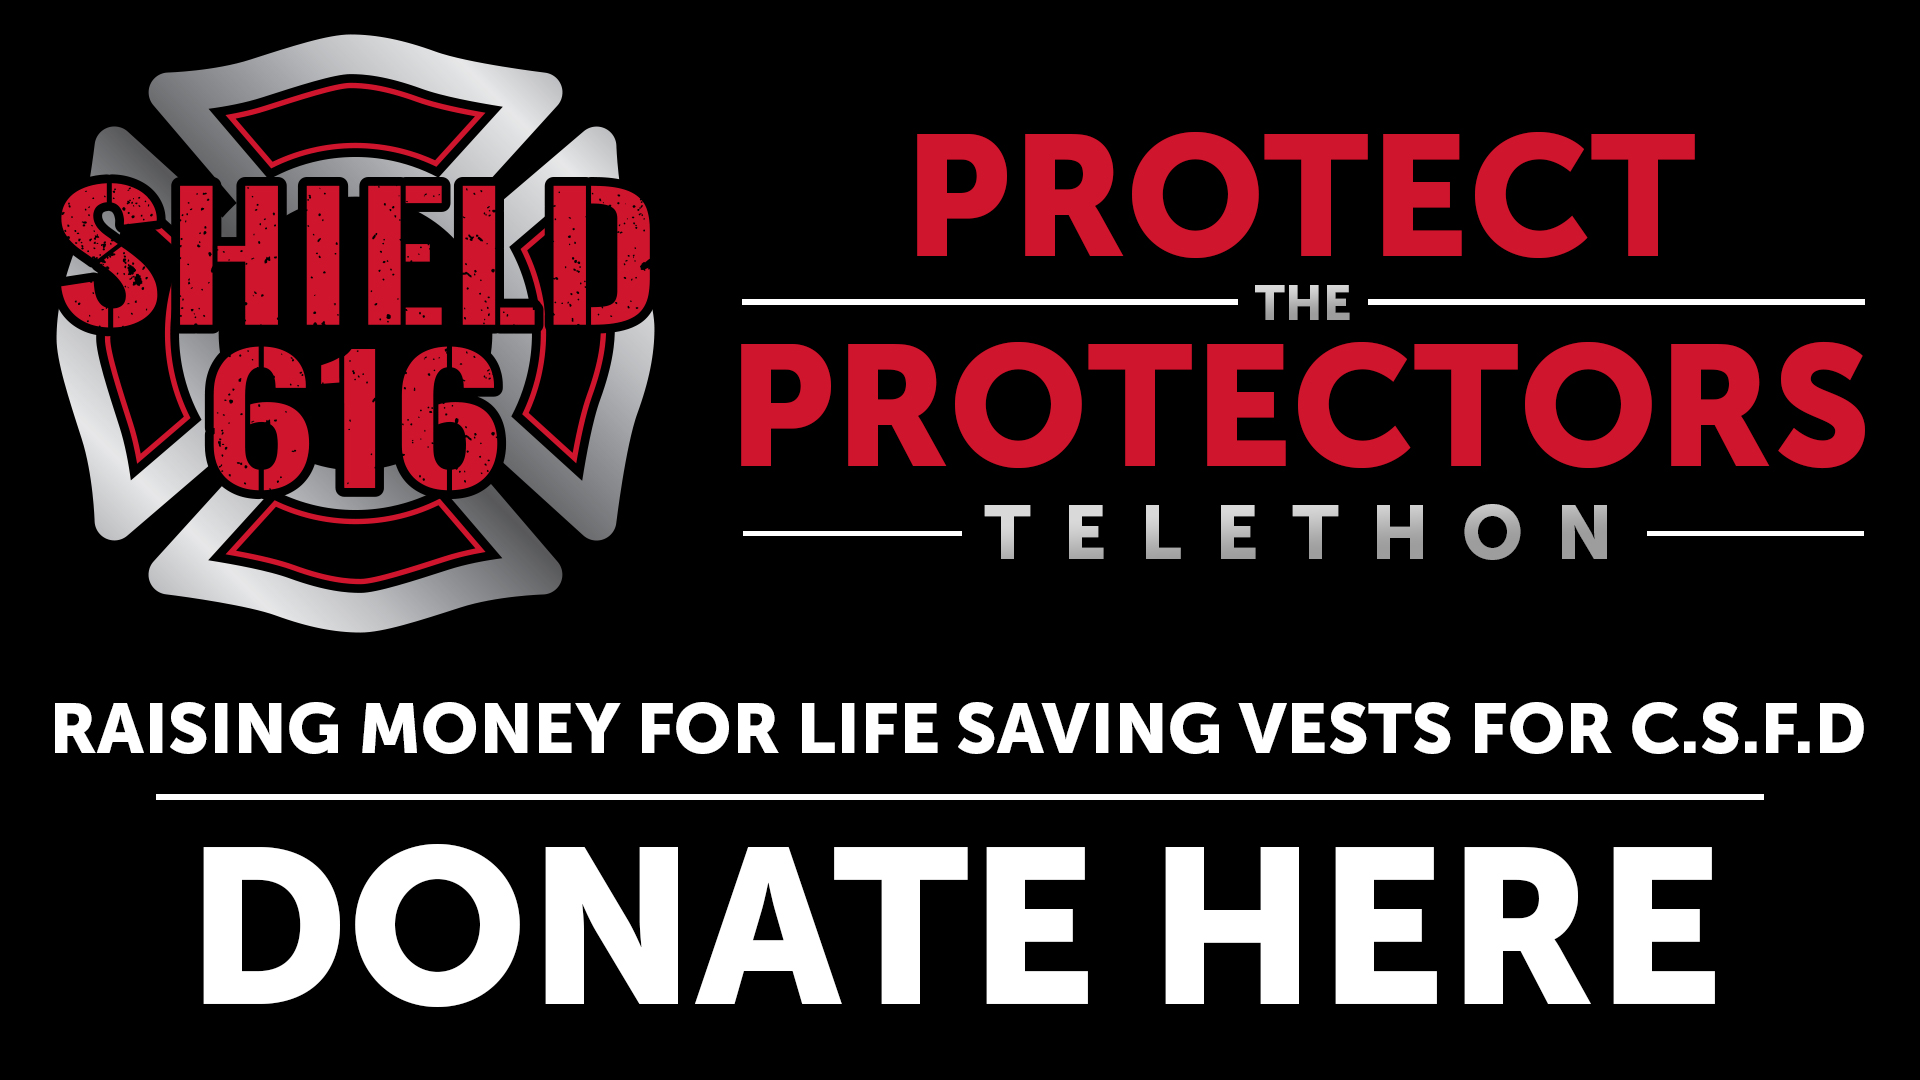 protect the protectors telethon banner